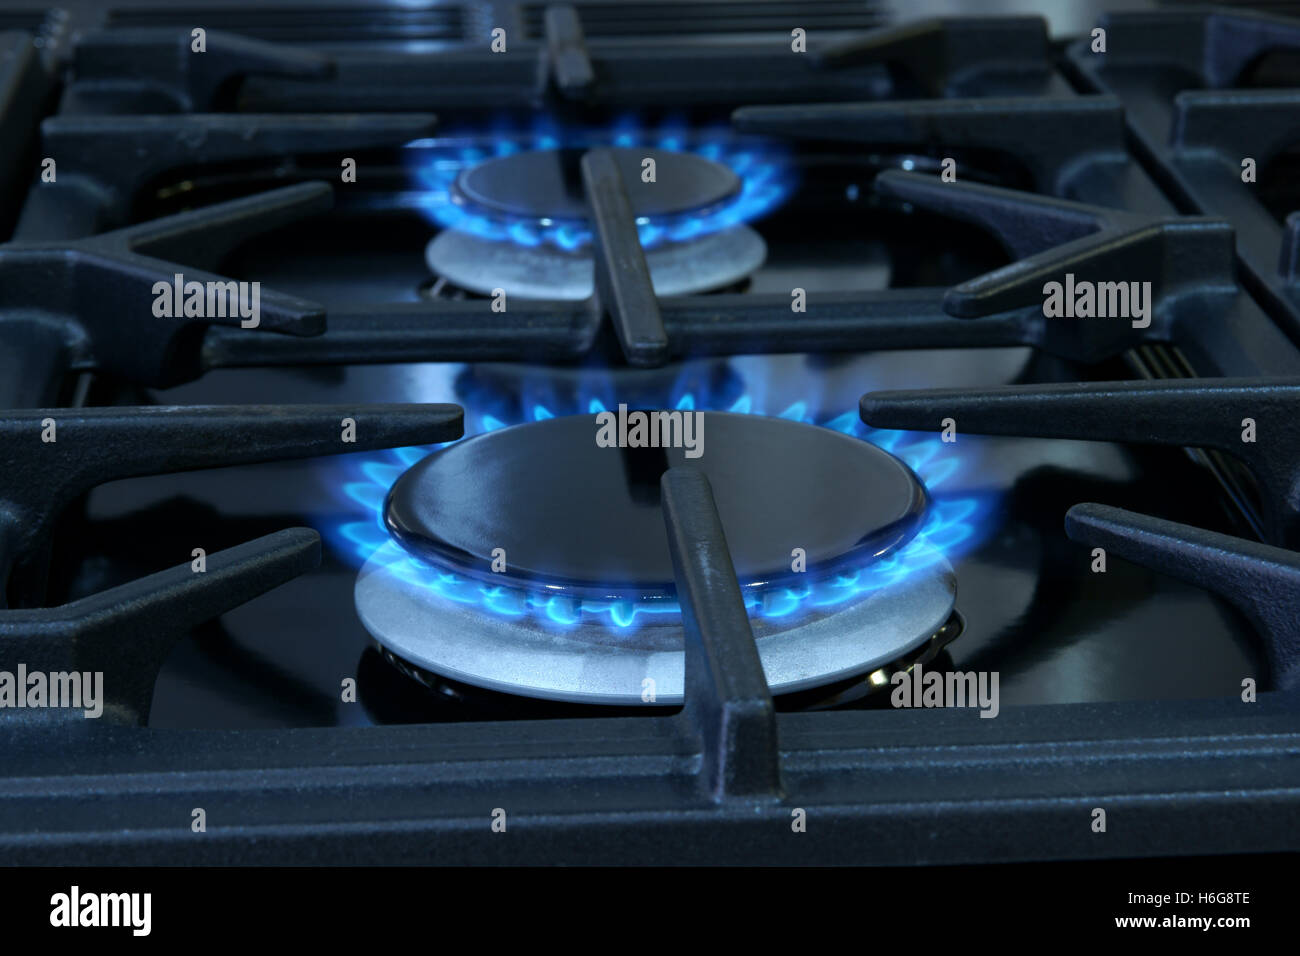 Two gas fueled rings on a domestic cooker or stove - Stock Image